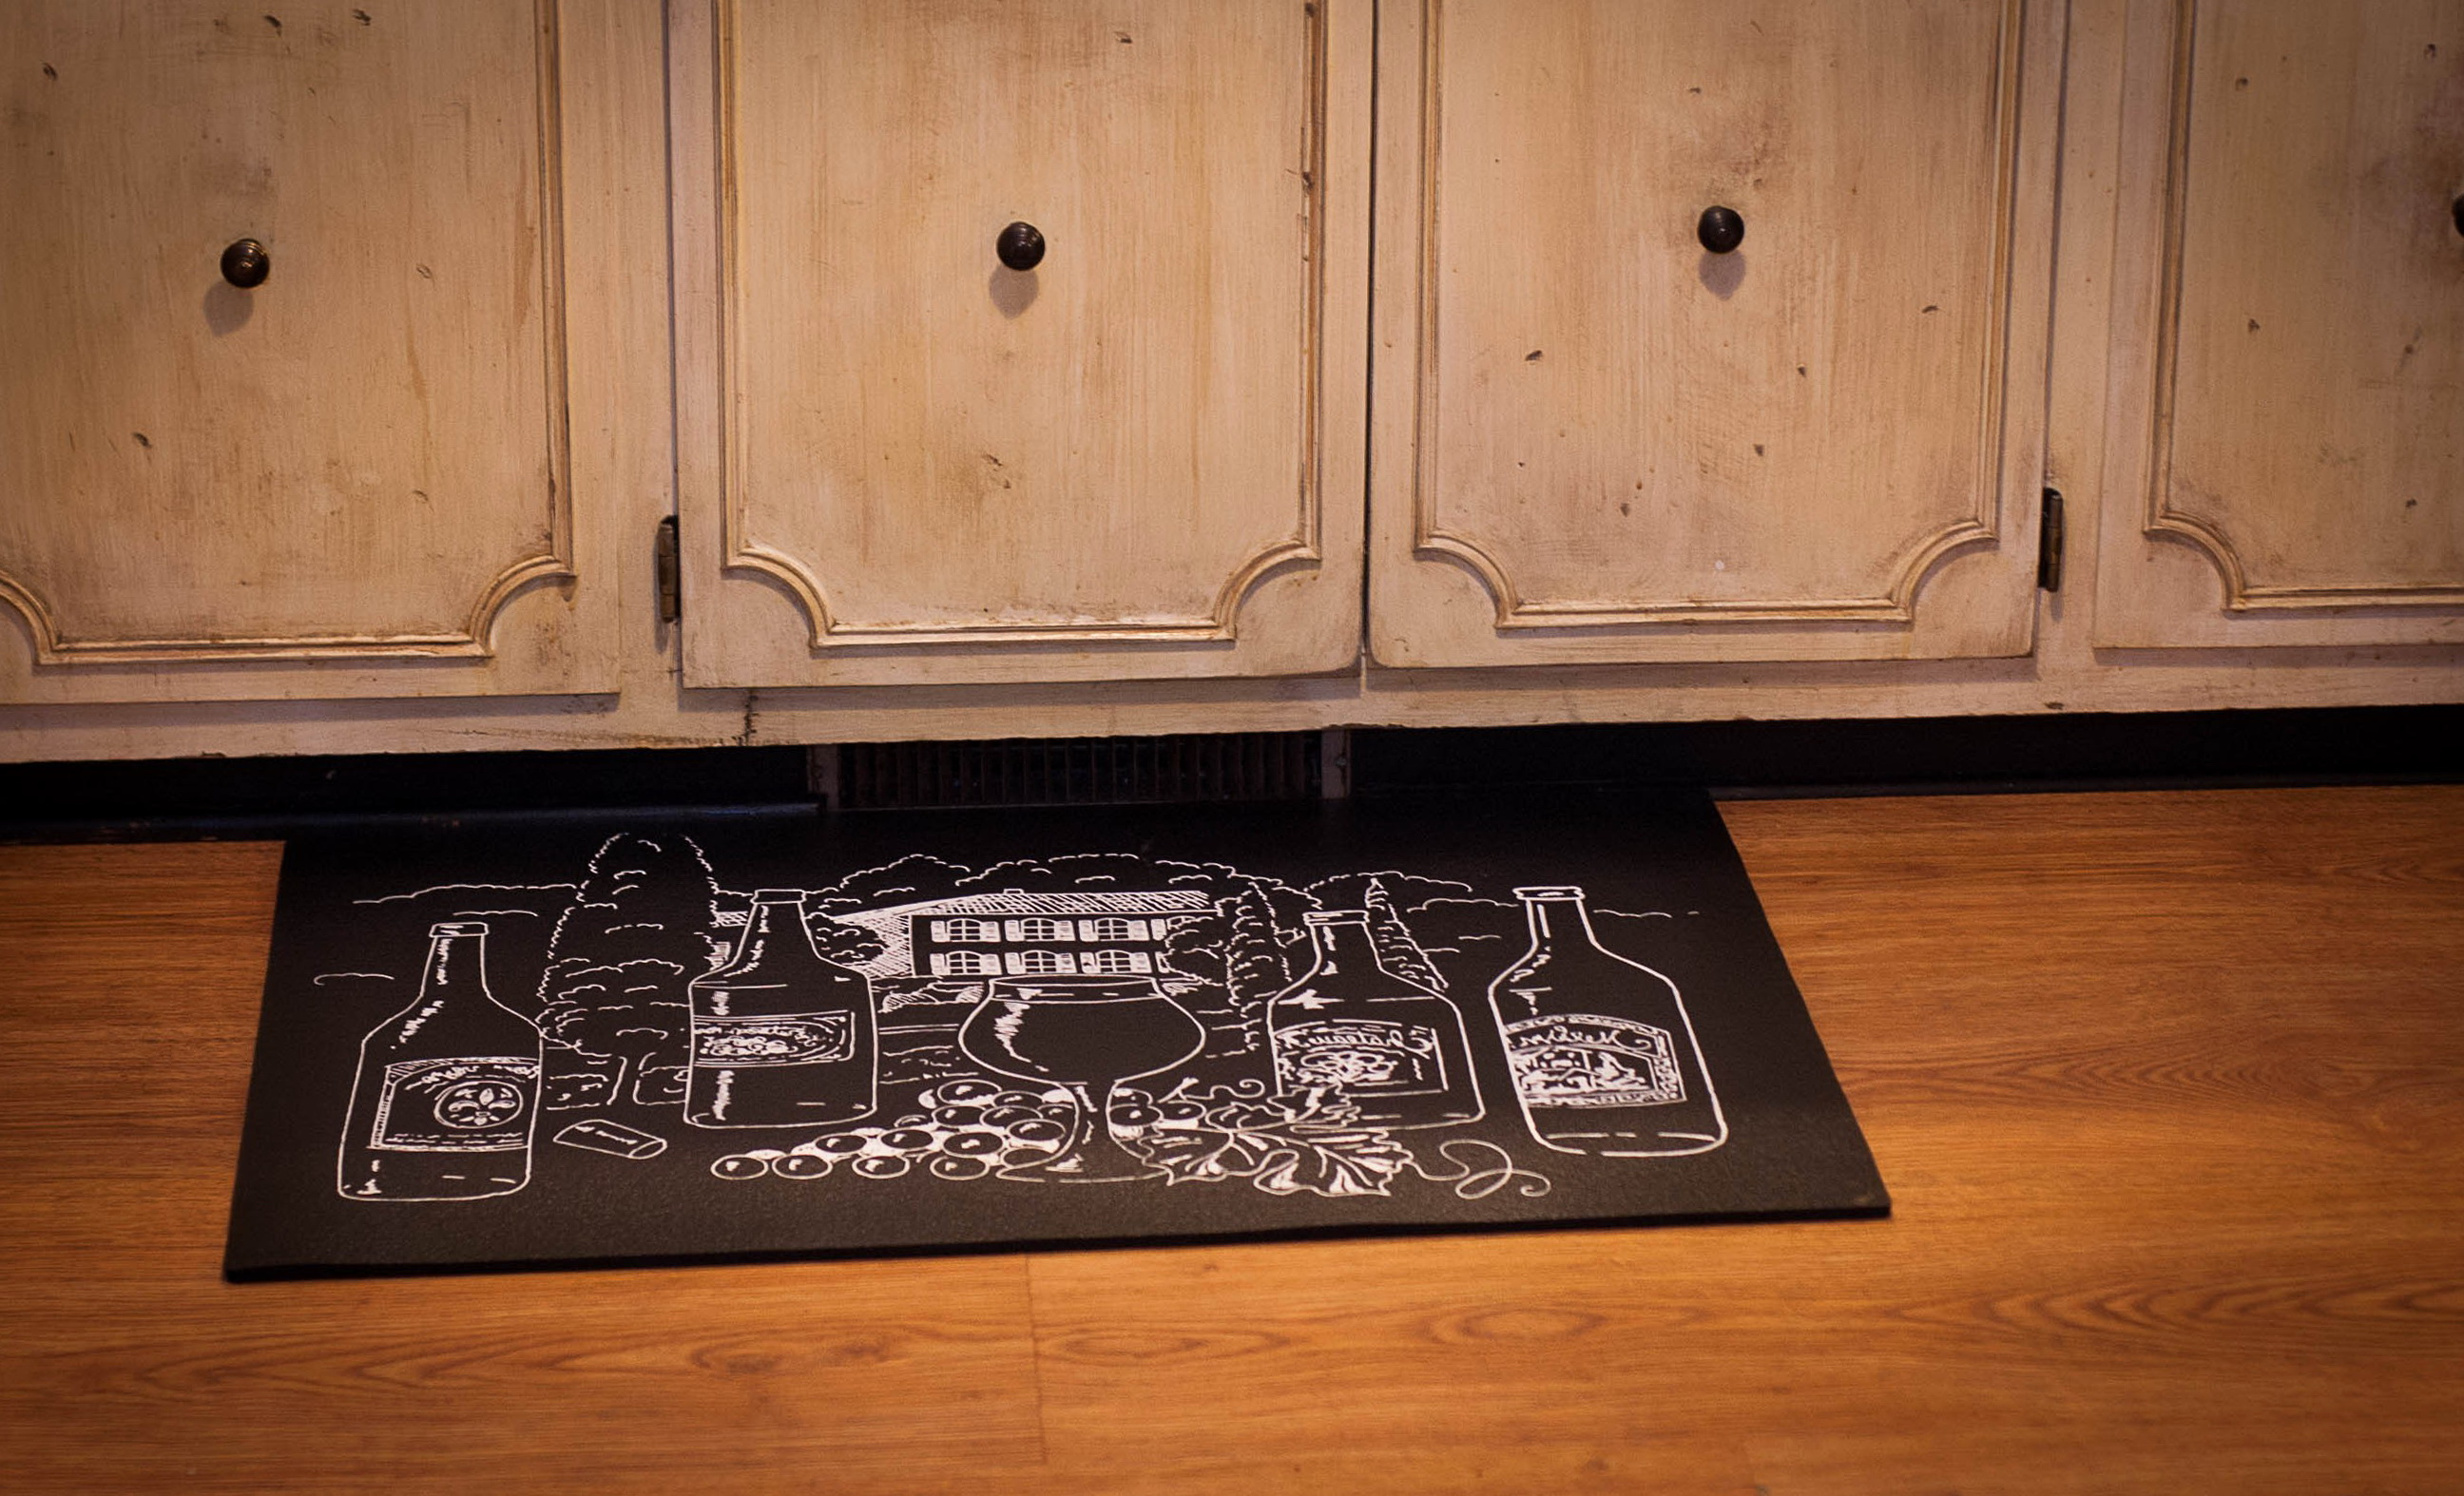 Cushioned Floor Mats For Office